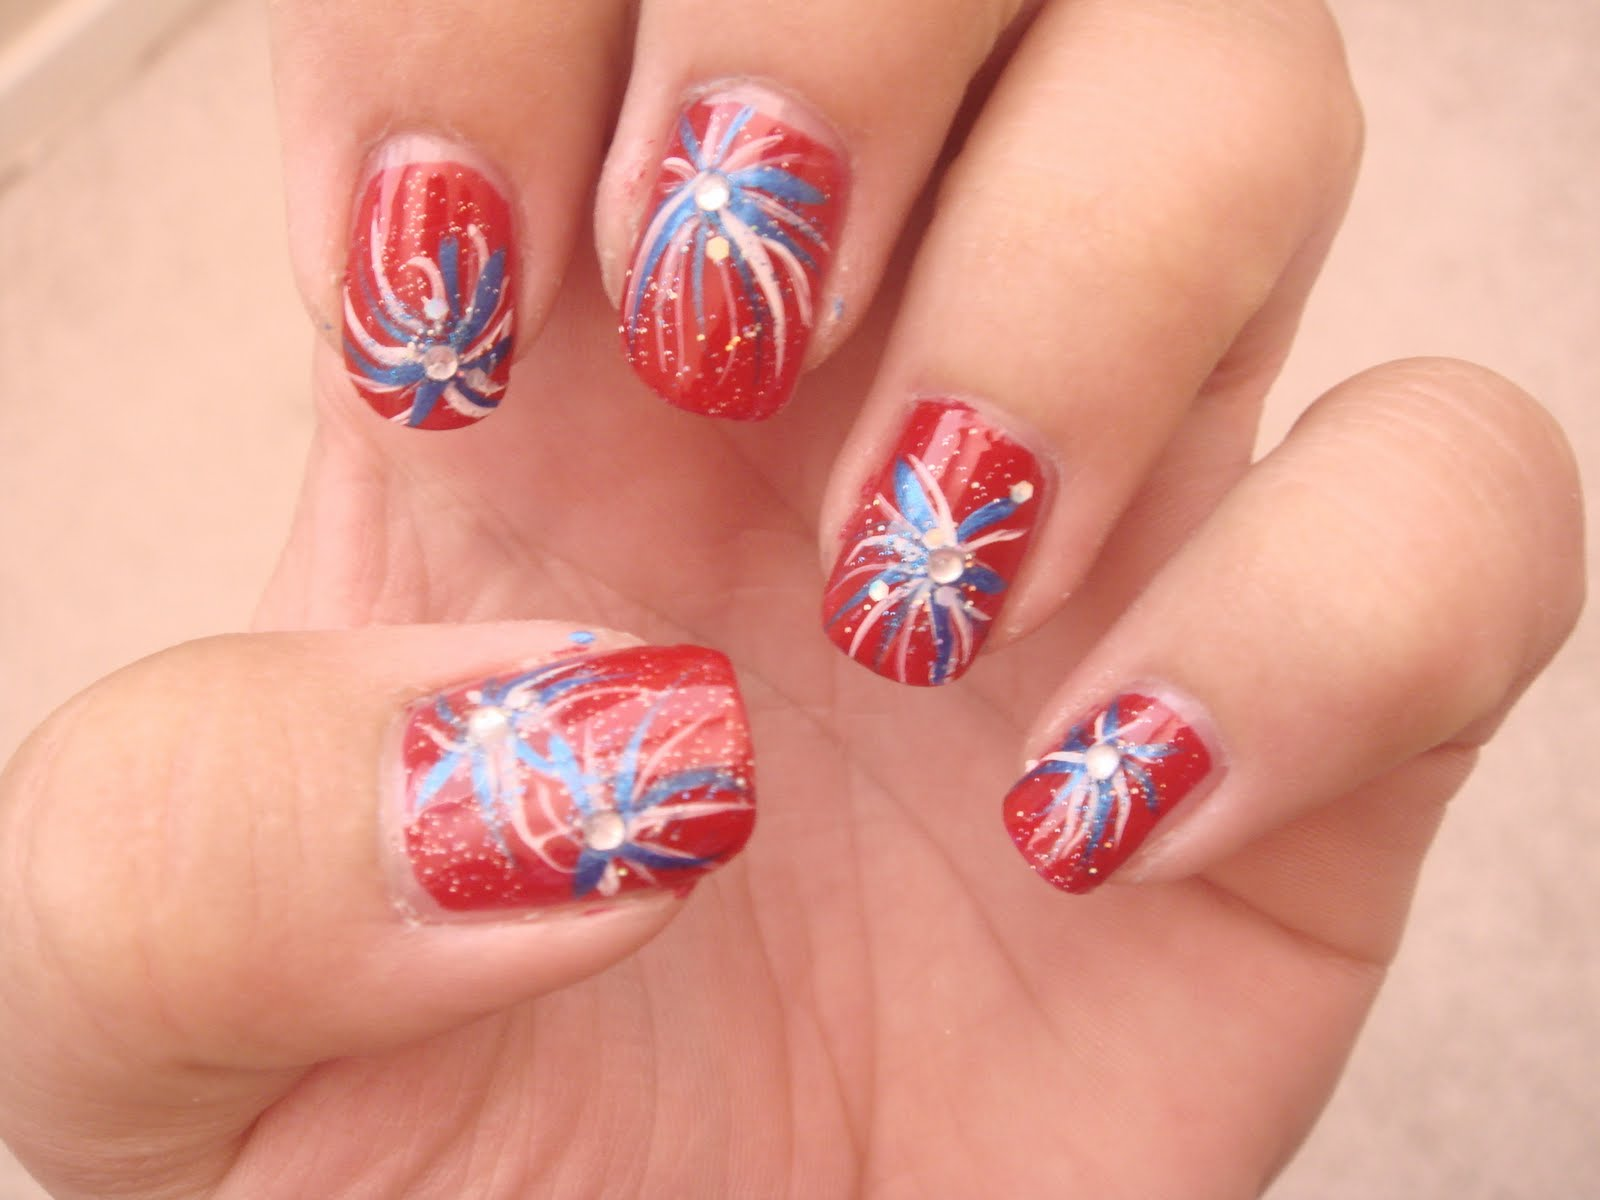 Nail Art Pictures Nail Art Ideas 4th July Nails Ideas